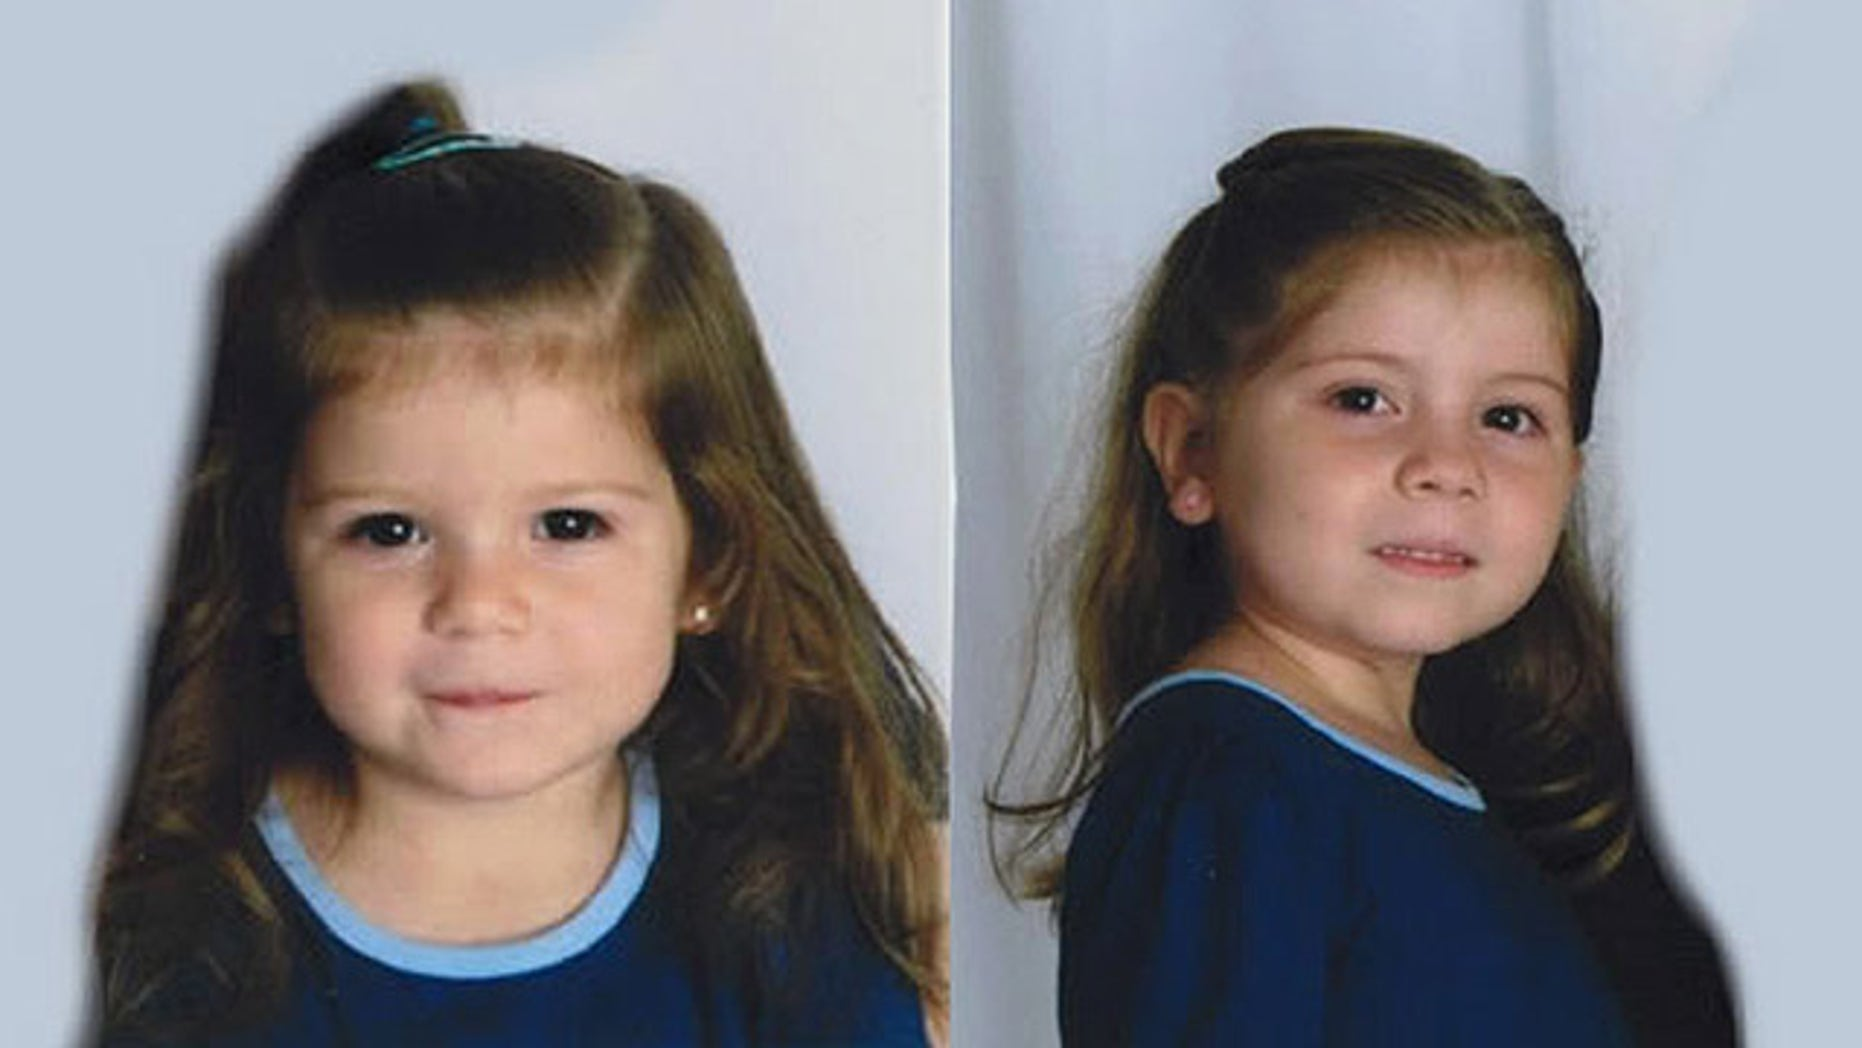 Police are searching for 6-year-old Natalya Litwin, right, and 2-year-old Katelyn Litwin, left, after their father, 34-year-old Stephen Litwin, allegedly abducted them from their home California home (Los Angeles County Sheriff's Department).